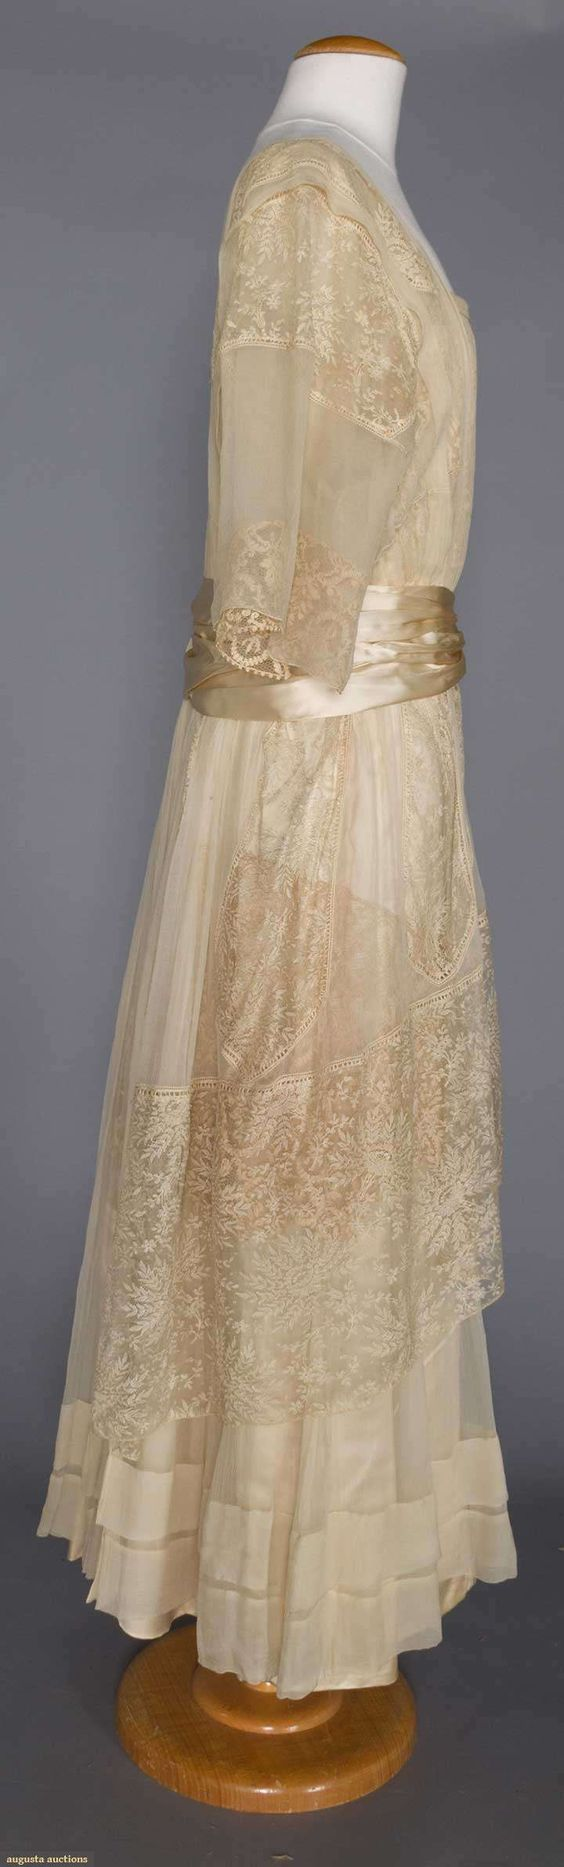 Evening Gown (image 3) | 1914 | silk, lace | Augusta Auctions | November 16, 2016